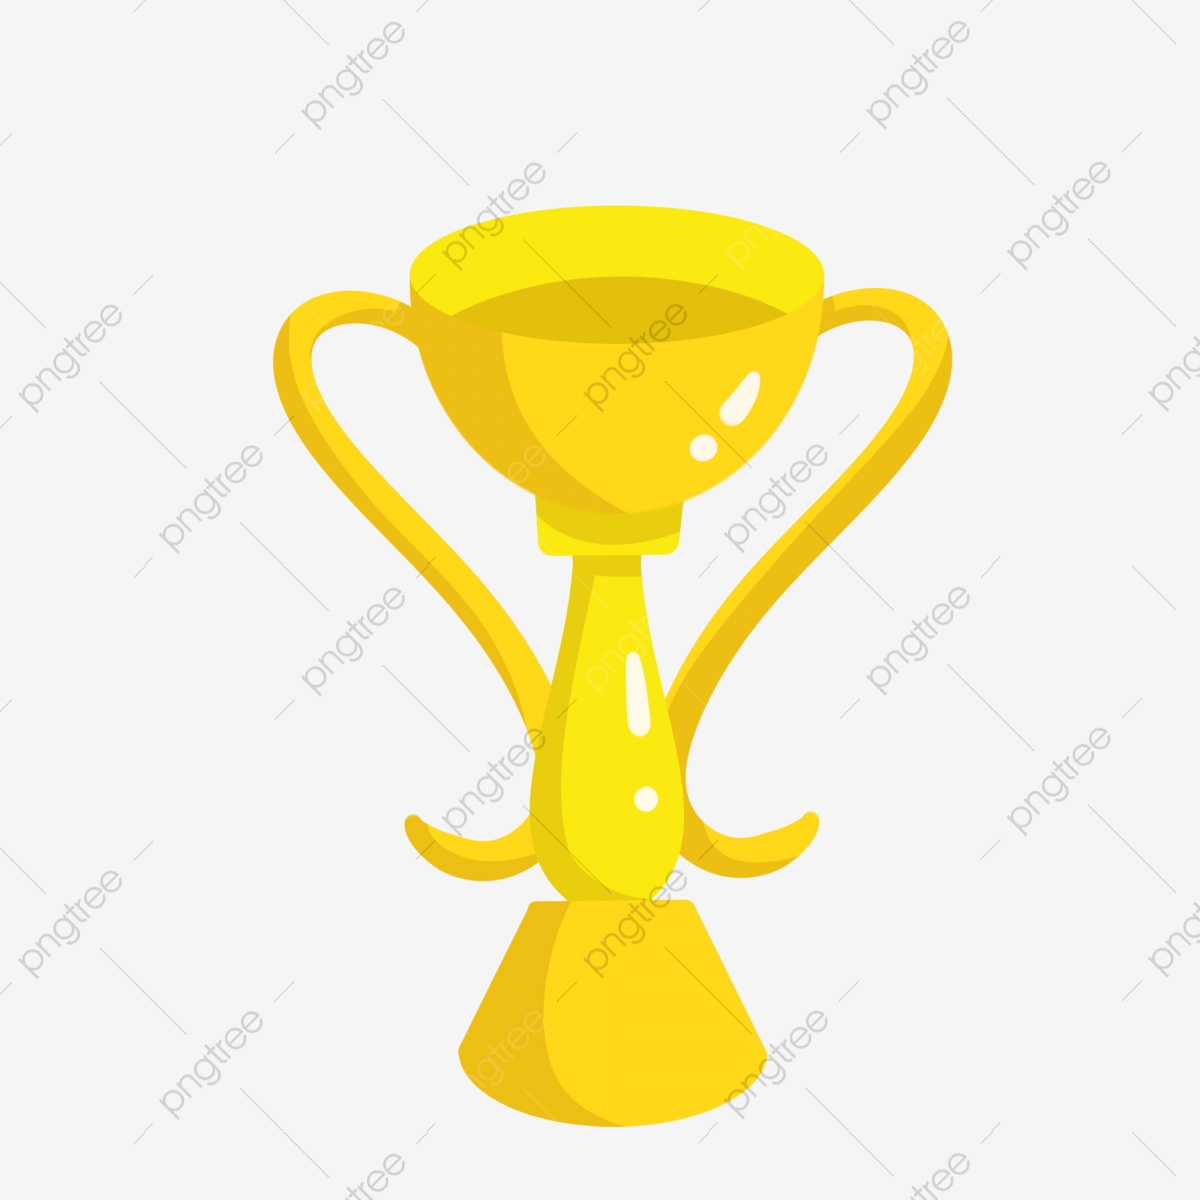 Beautifully Gold Trophy, Trophy Clipart, Gold Trophy PNG Transparent.